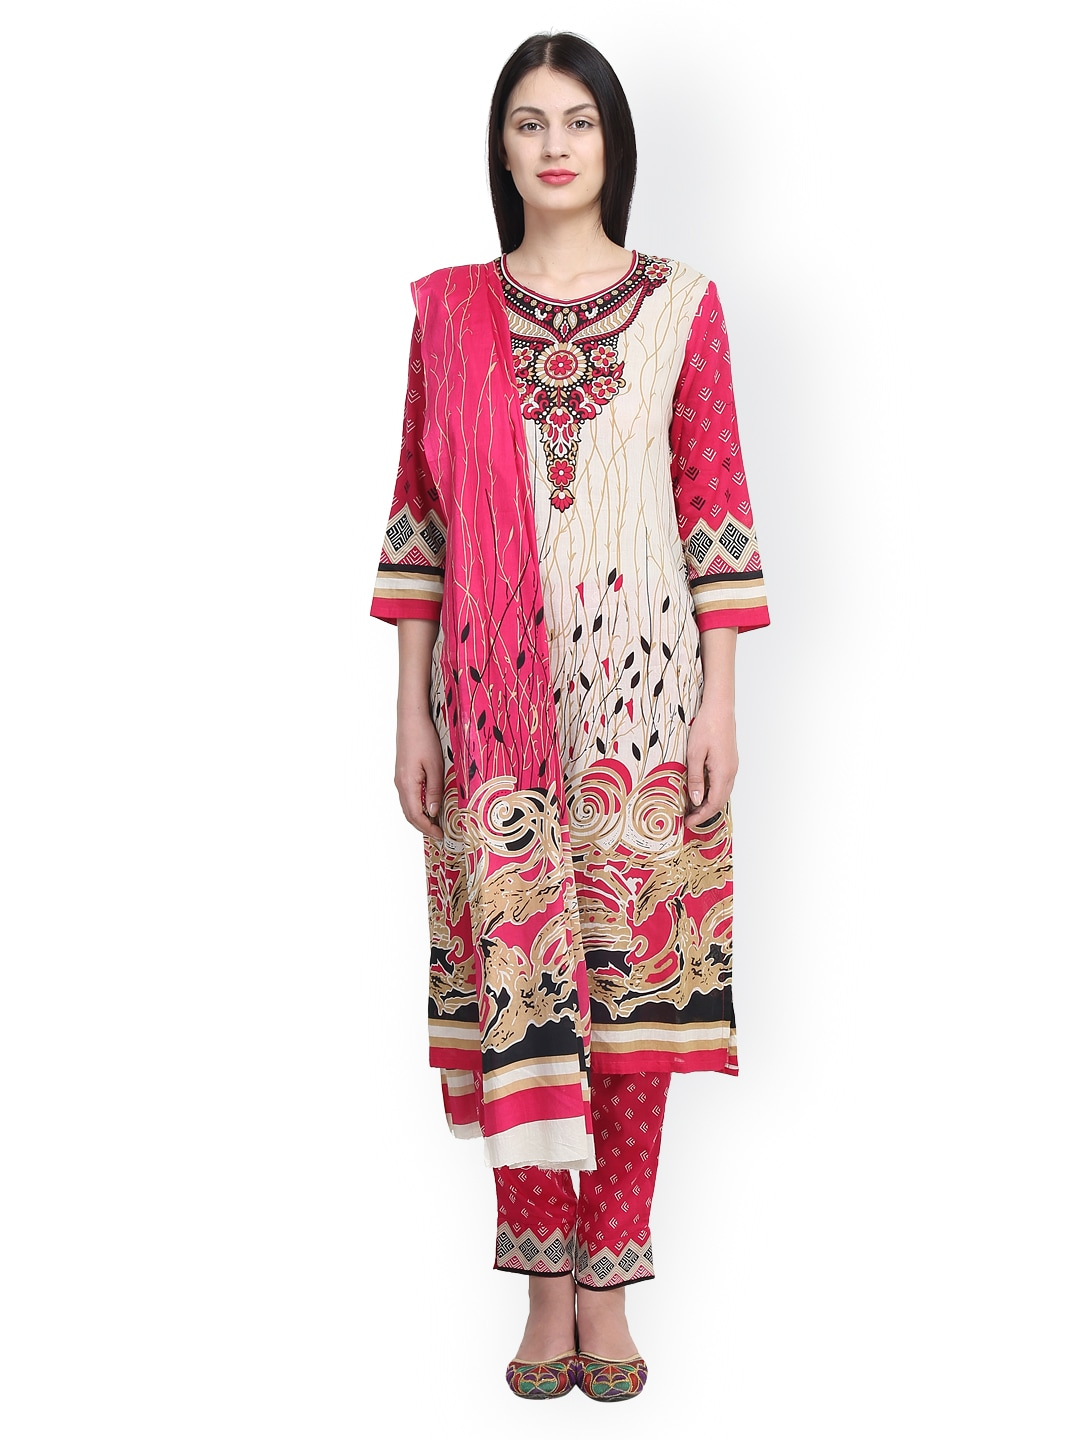 Uptown Galeria White & Pink Printed Pakistani Cotton Lawn Unstitched Dress Material